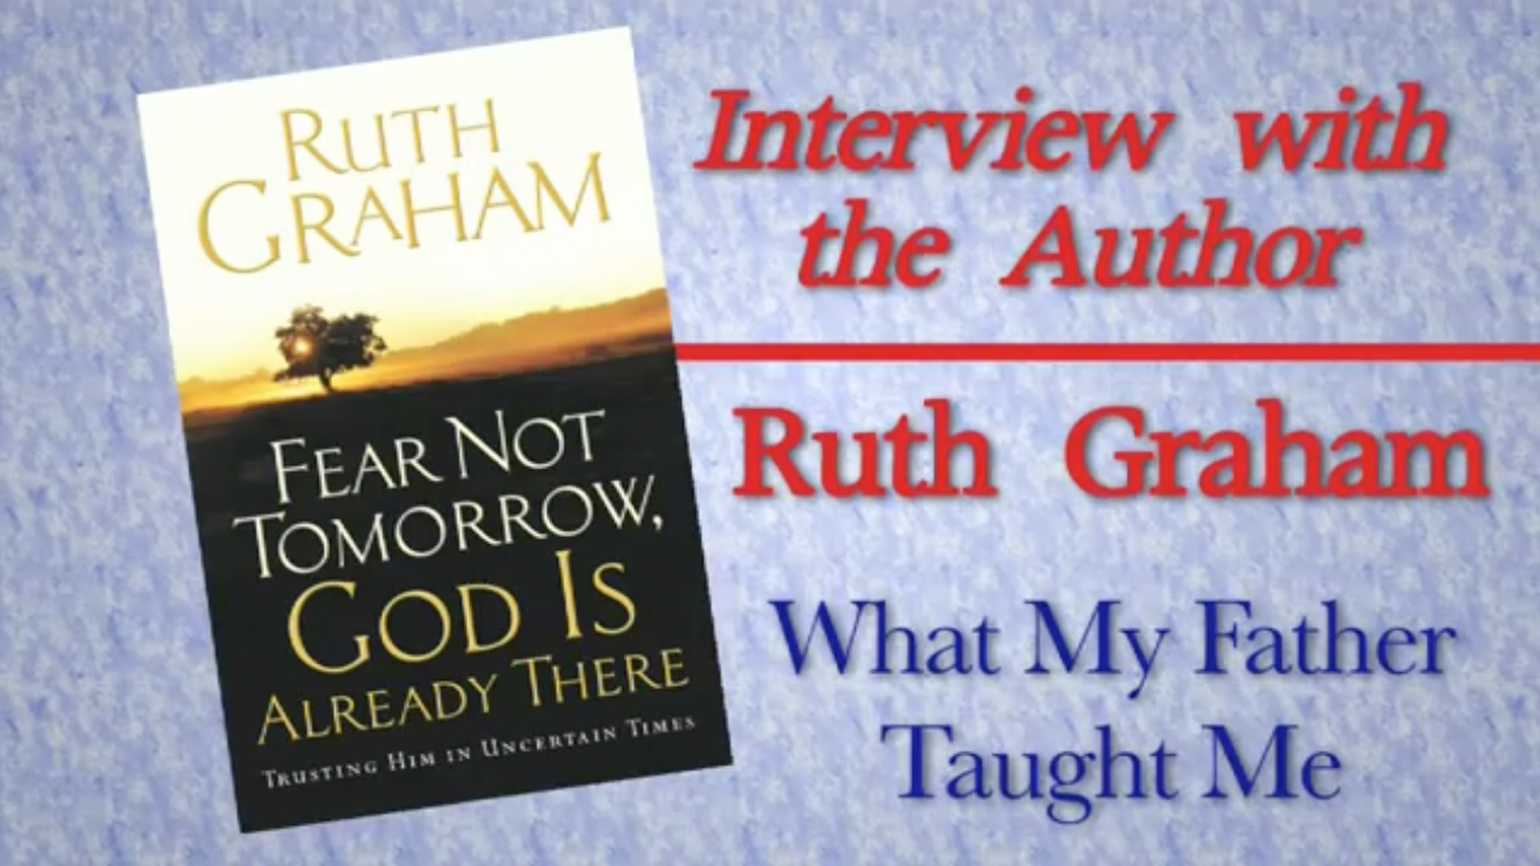 Ruth Graham: What My Father Taught Me